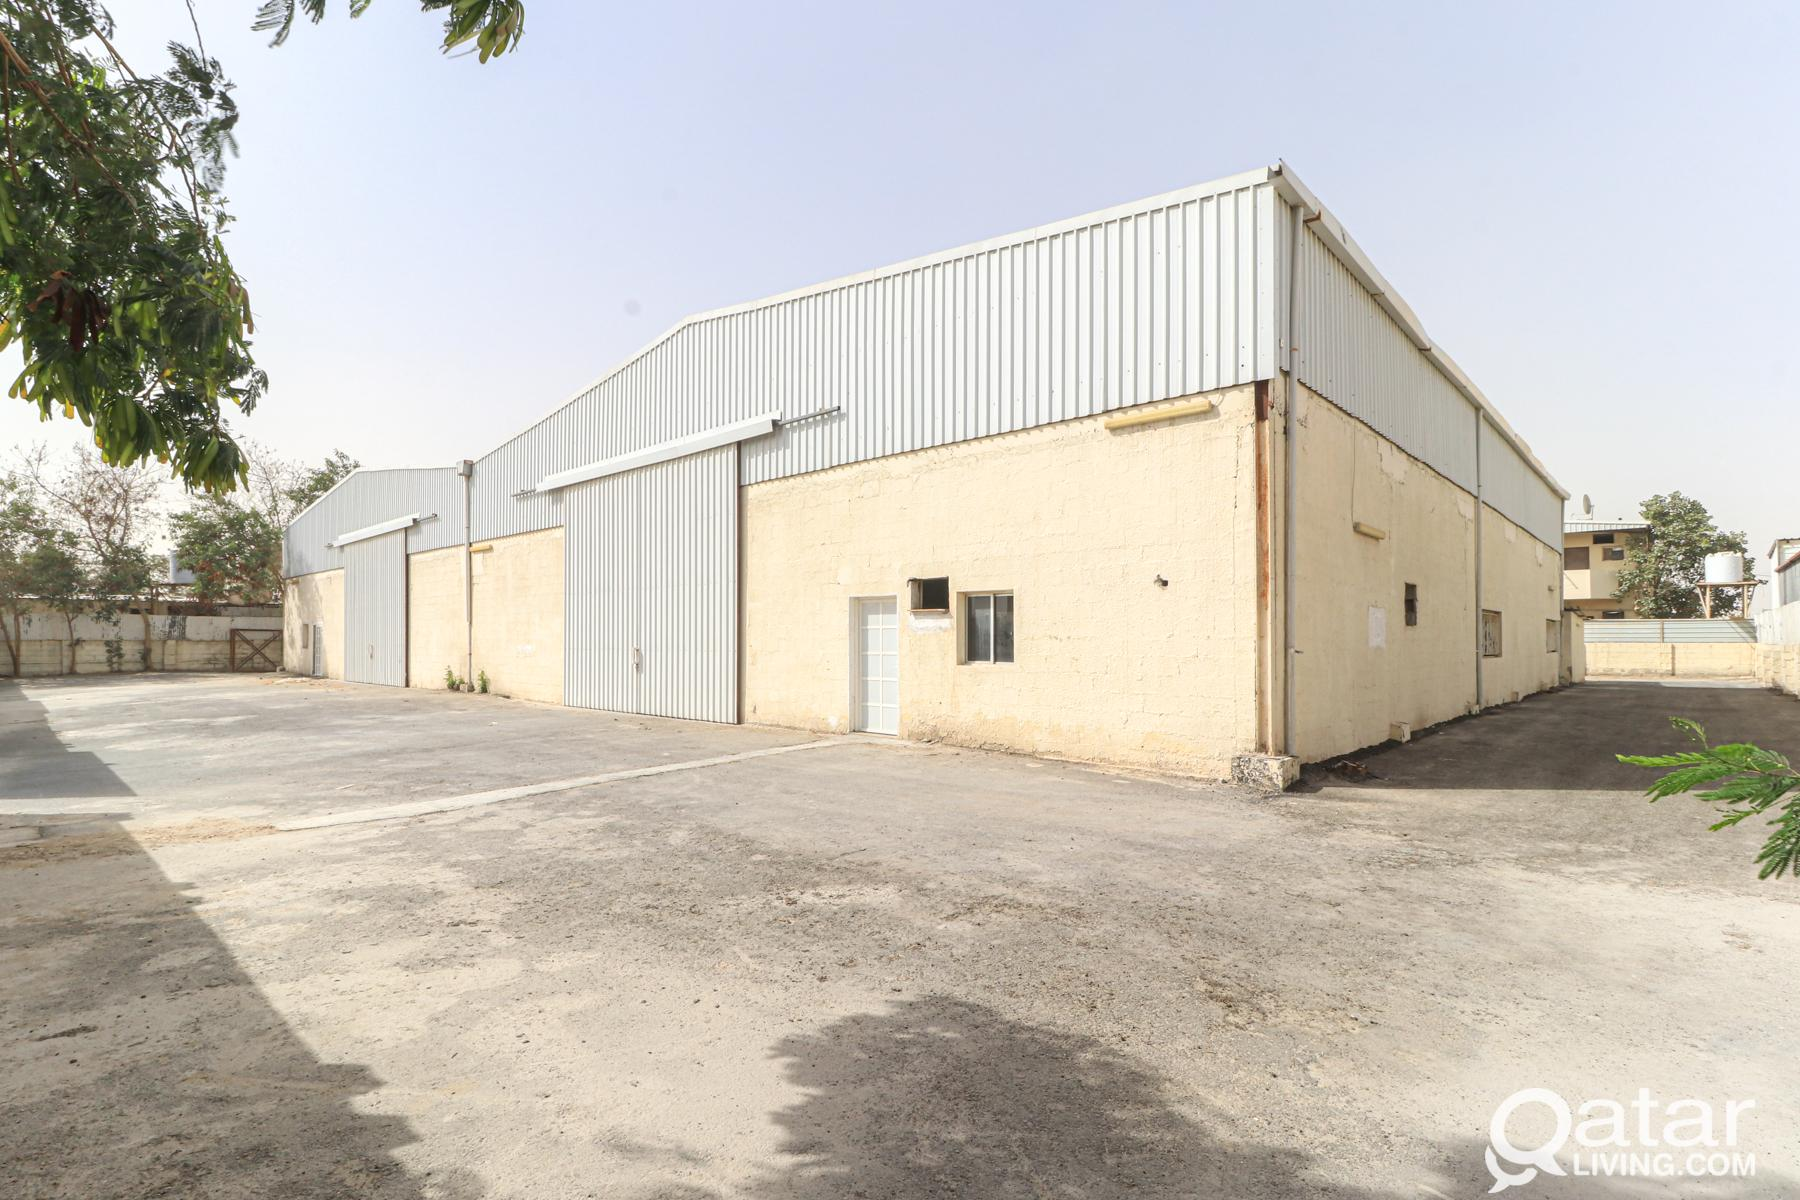 2600Sqm Warehouse with 9 Rooms in Industrial